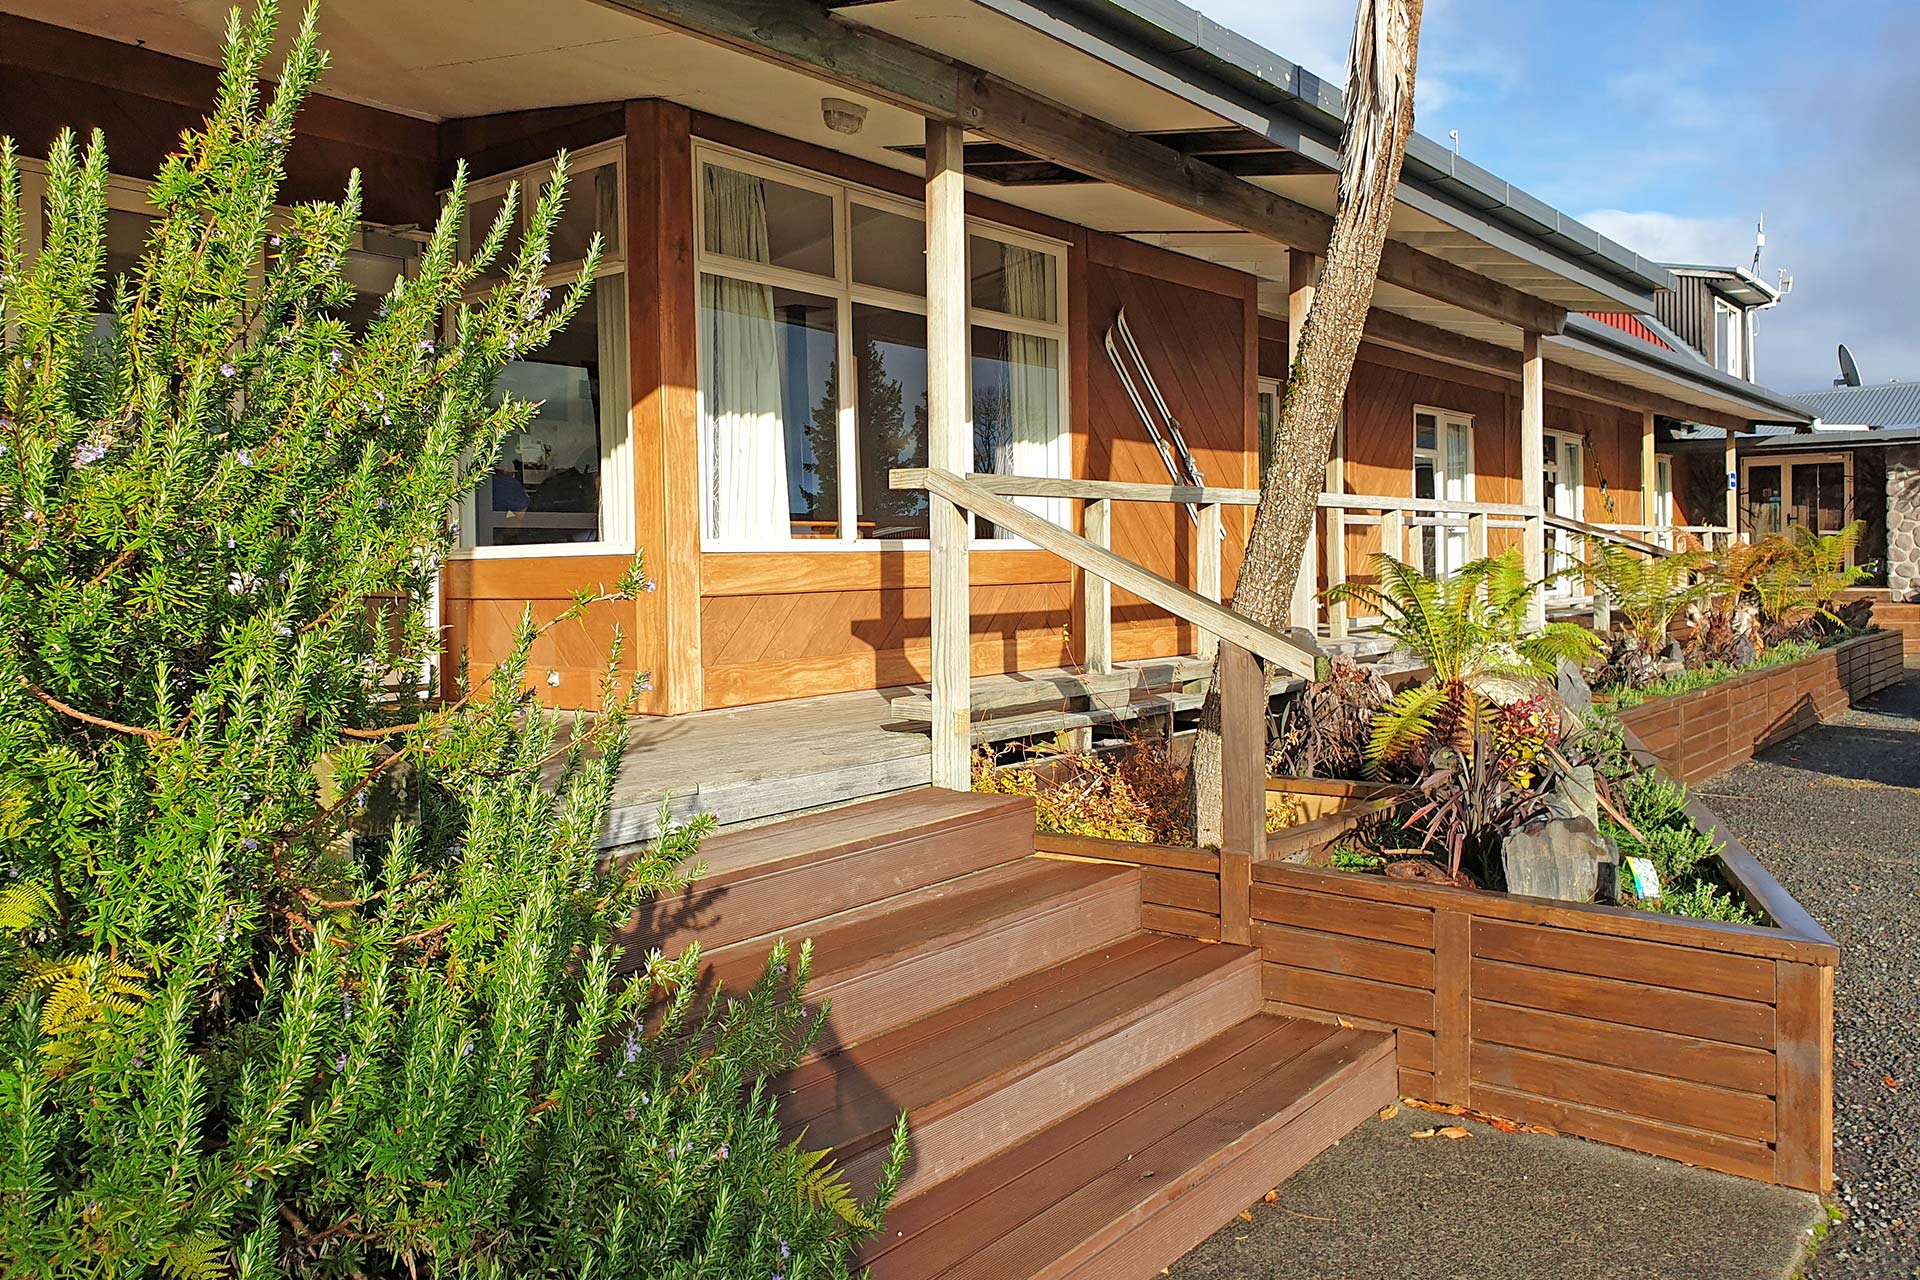 Plateau Lodge, accommodation in the Tongariro National Park